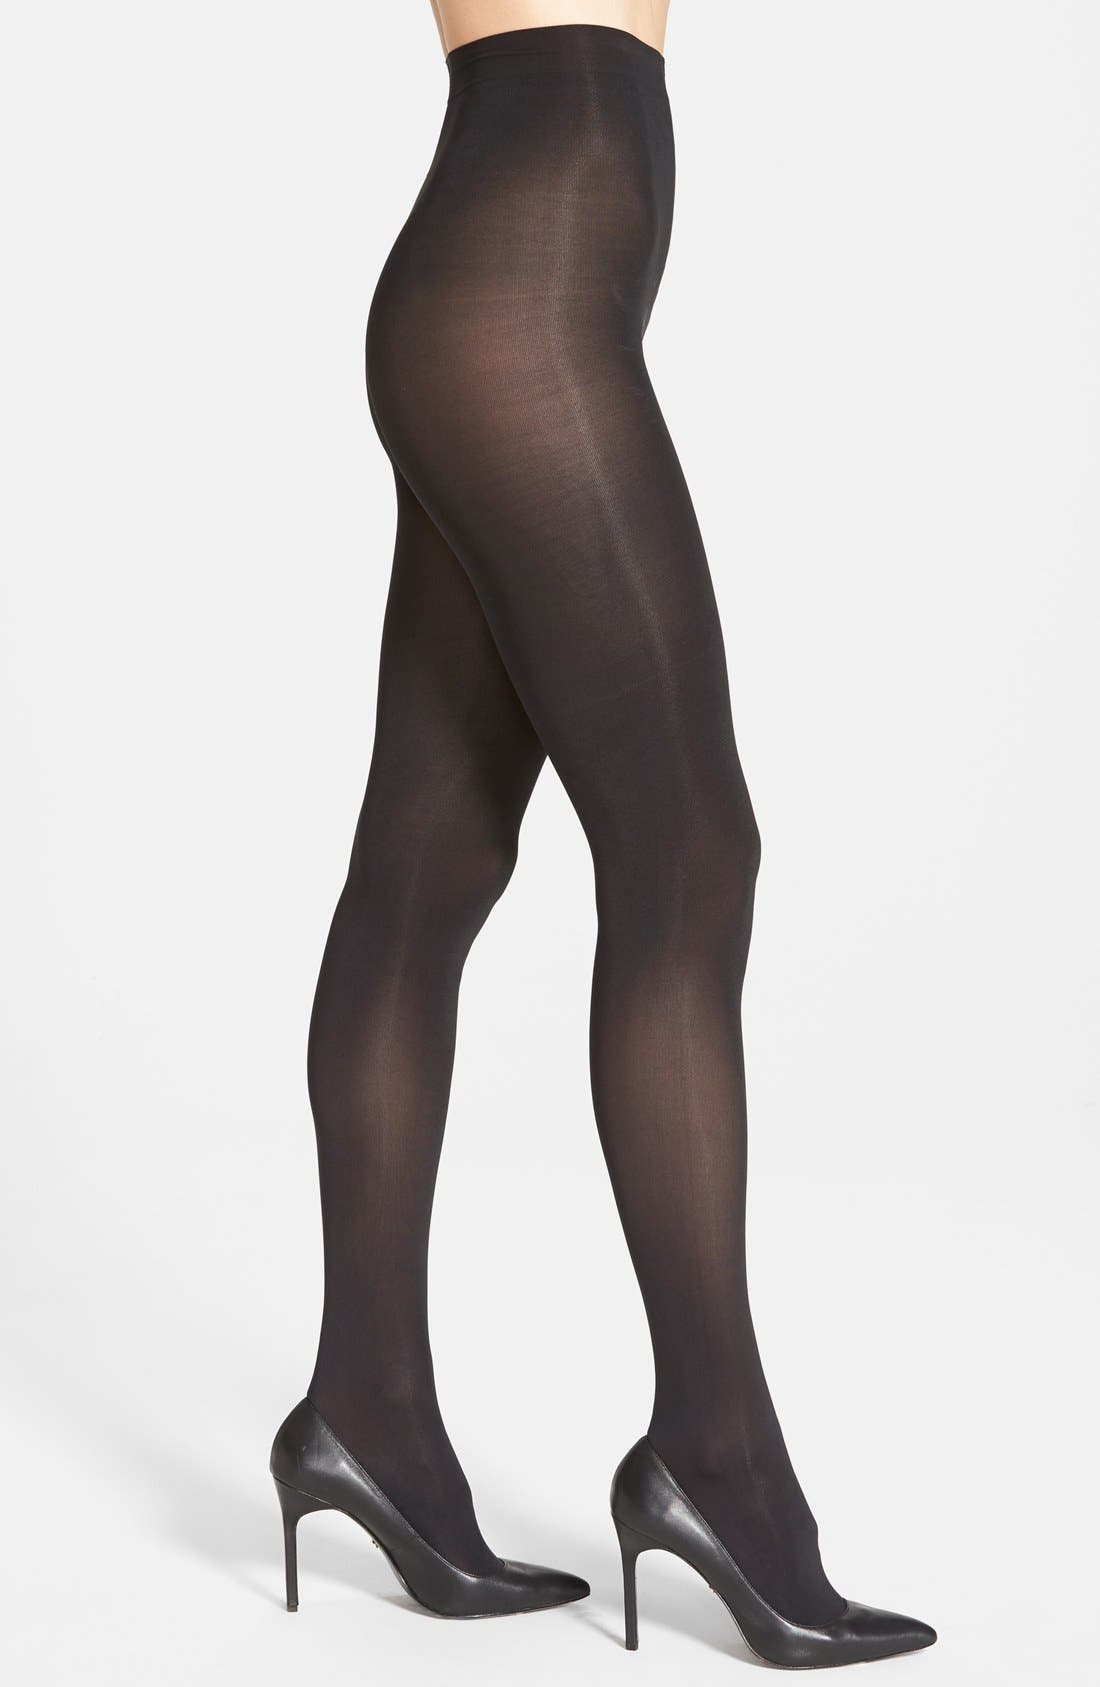 Donna Karan 'Evolution' Satin Jersey Tights,                             Main thumbnail 1, color,                             003